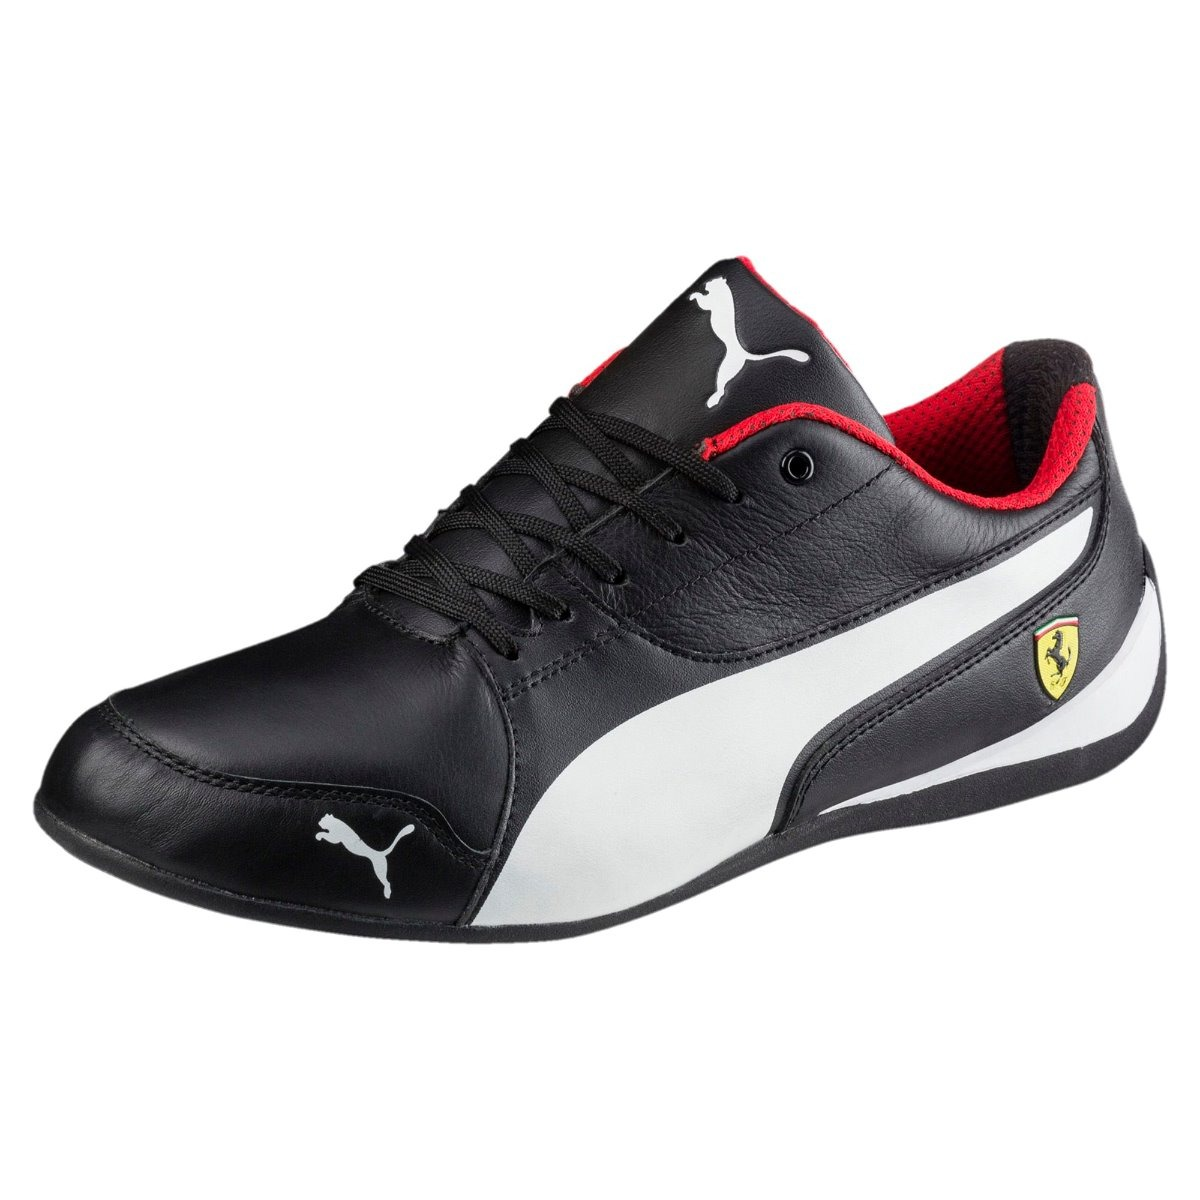 f0a6fffdf12 where to buy tenis puma ferrari future cat jr blanco puma negro 36419214  0e622 6341c  top quality cargando zoom. 83e57 96b1f